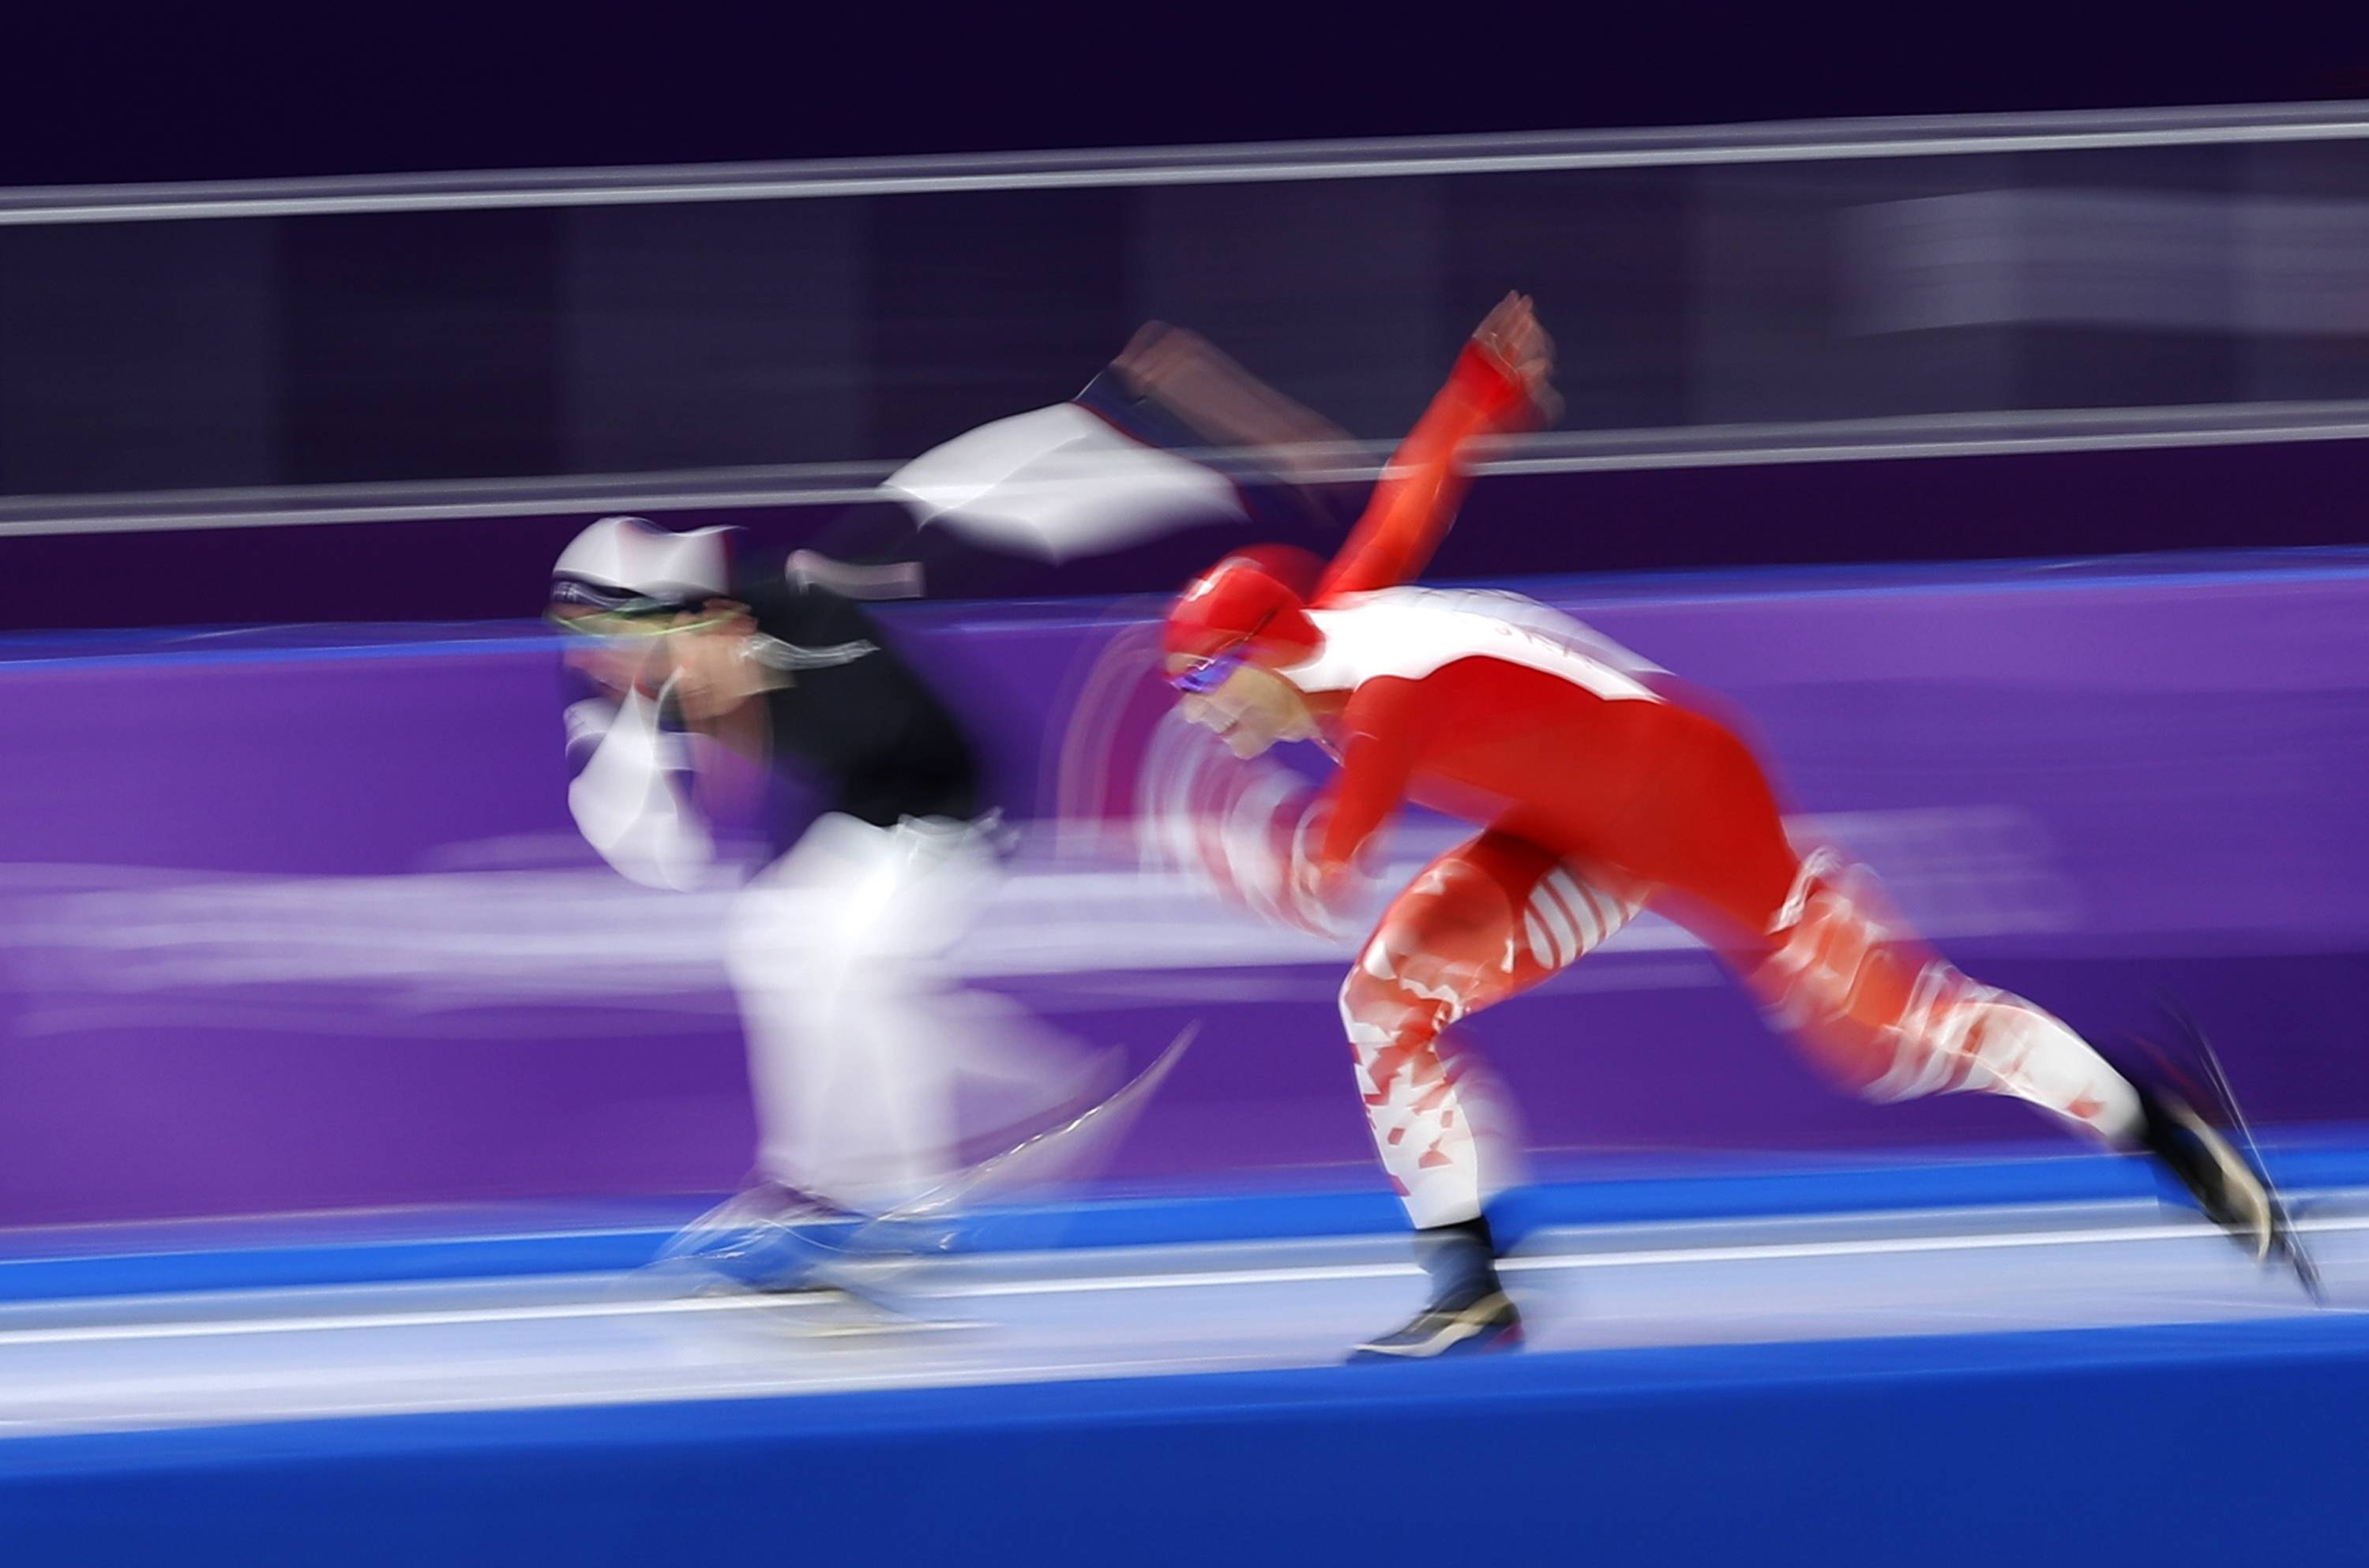 A blur on the ice, Brian Hansen of the United State, left, and Zbigniew Brodka of Poland compete during the men's 1,500 meters speedskating race at the Gangneung Oval at the 2018 Winter Olympics in, Tuesday, Feb. 13, 2018.